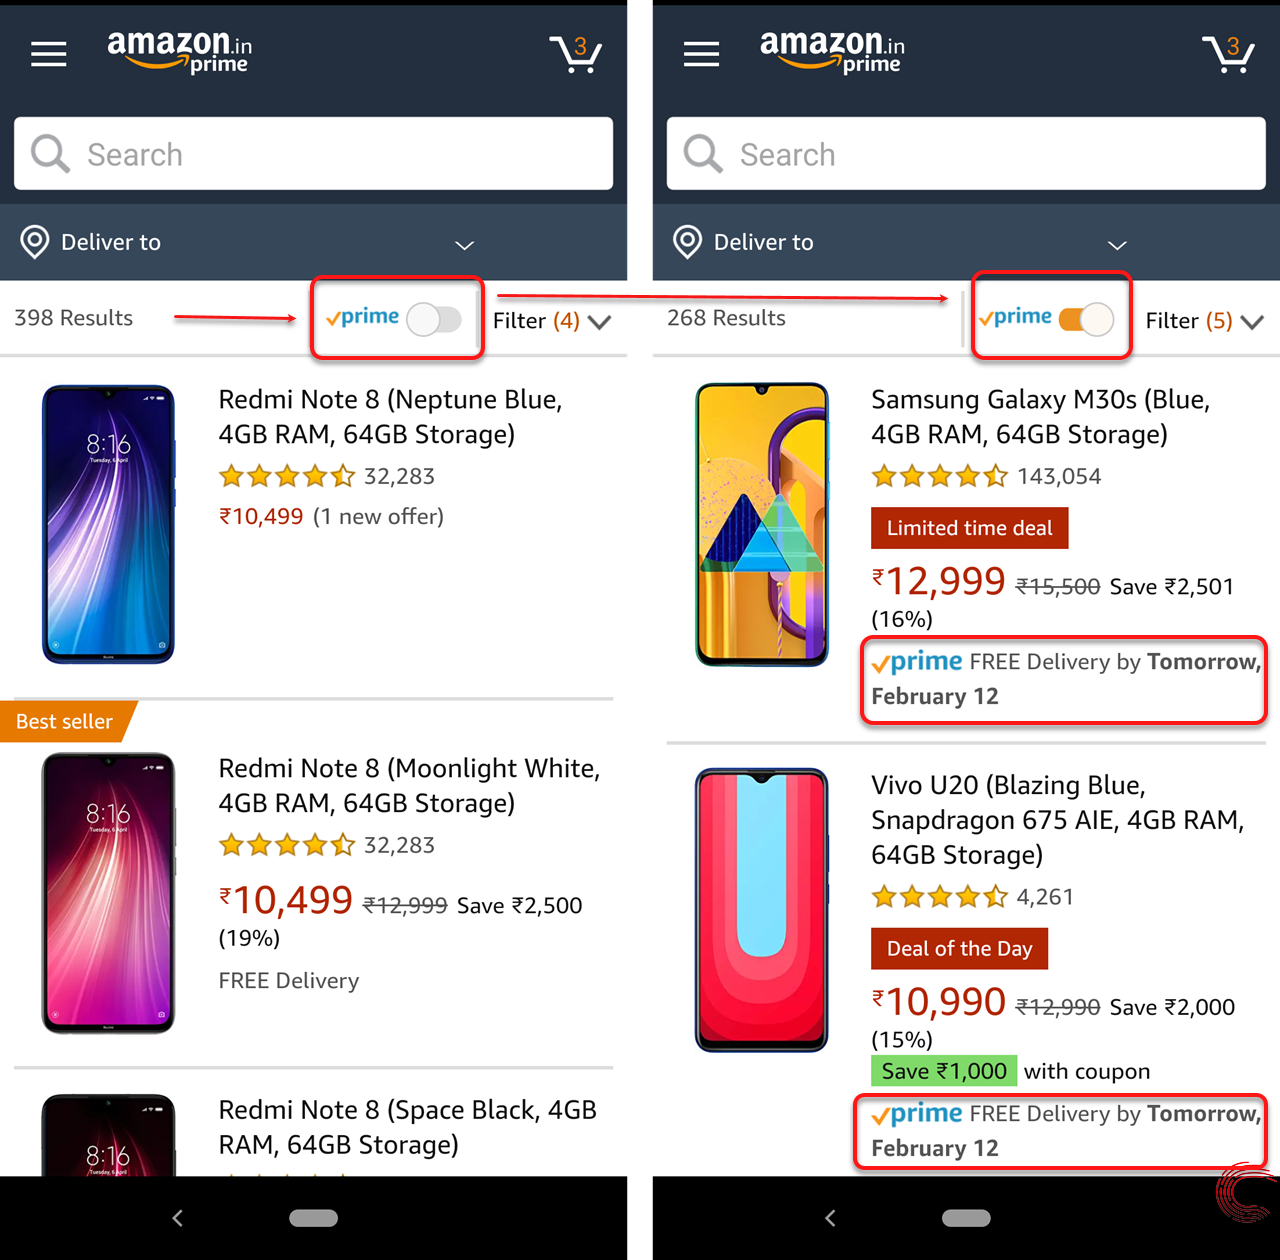 How to search Amazon Prime? Via the app and website